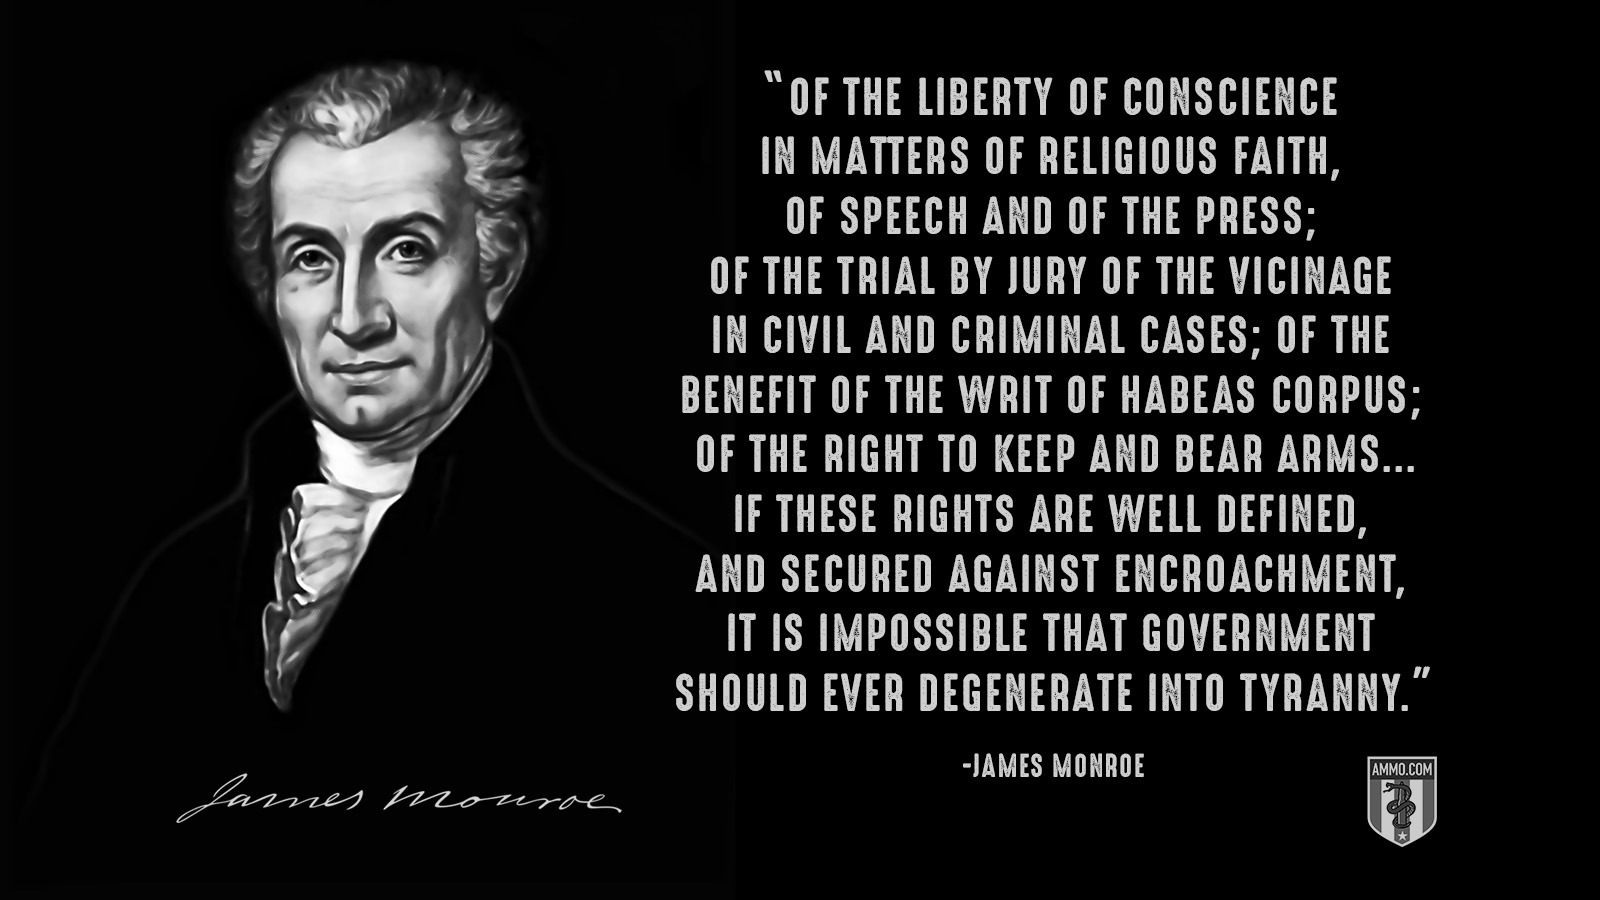 """Of the liberty of conscience in matters of religious faith, of speech and of the press; of the trial by jury of the vicinage in civil and criminal cases; of the benefit of the writ of habeas corpus; of the right to keep and bear arms...If these rights are well defined, and secured against encroachment, it is impossible that government should ever degenerate into tyranny."" - James Monroe"